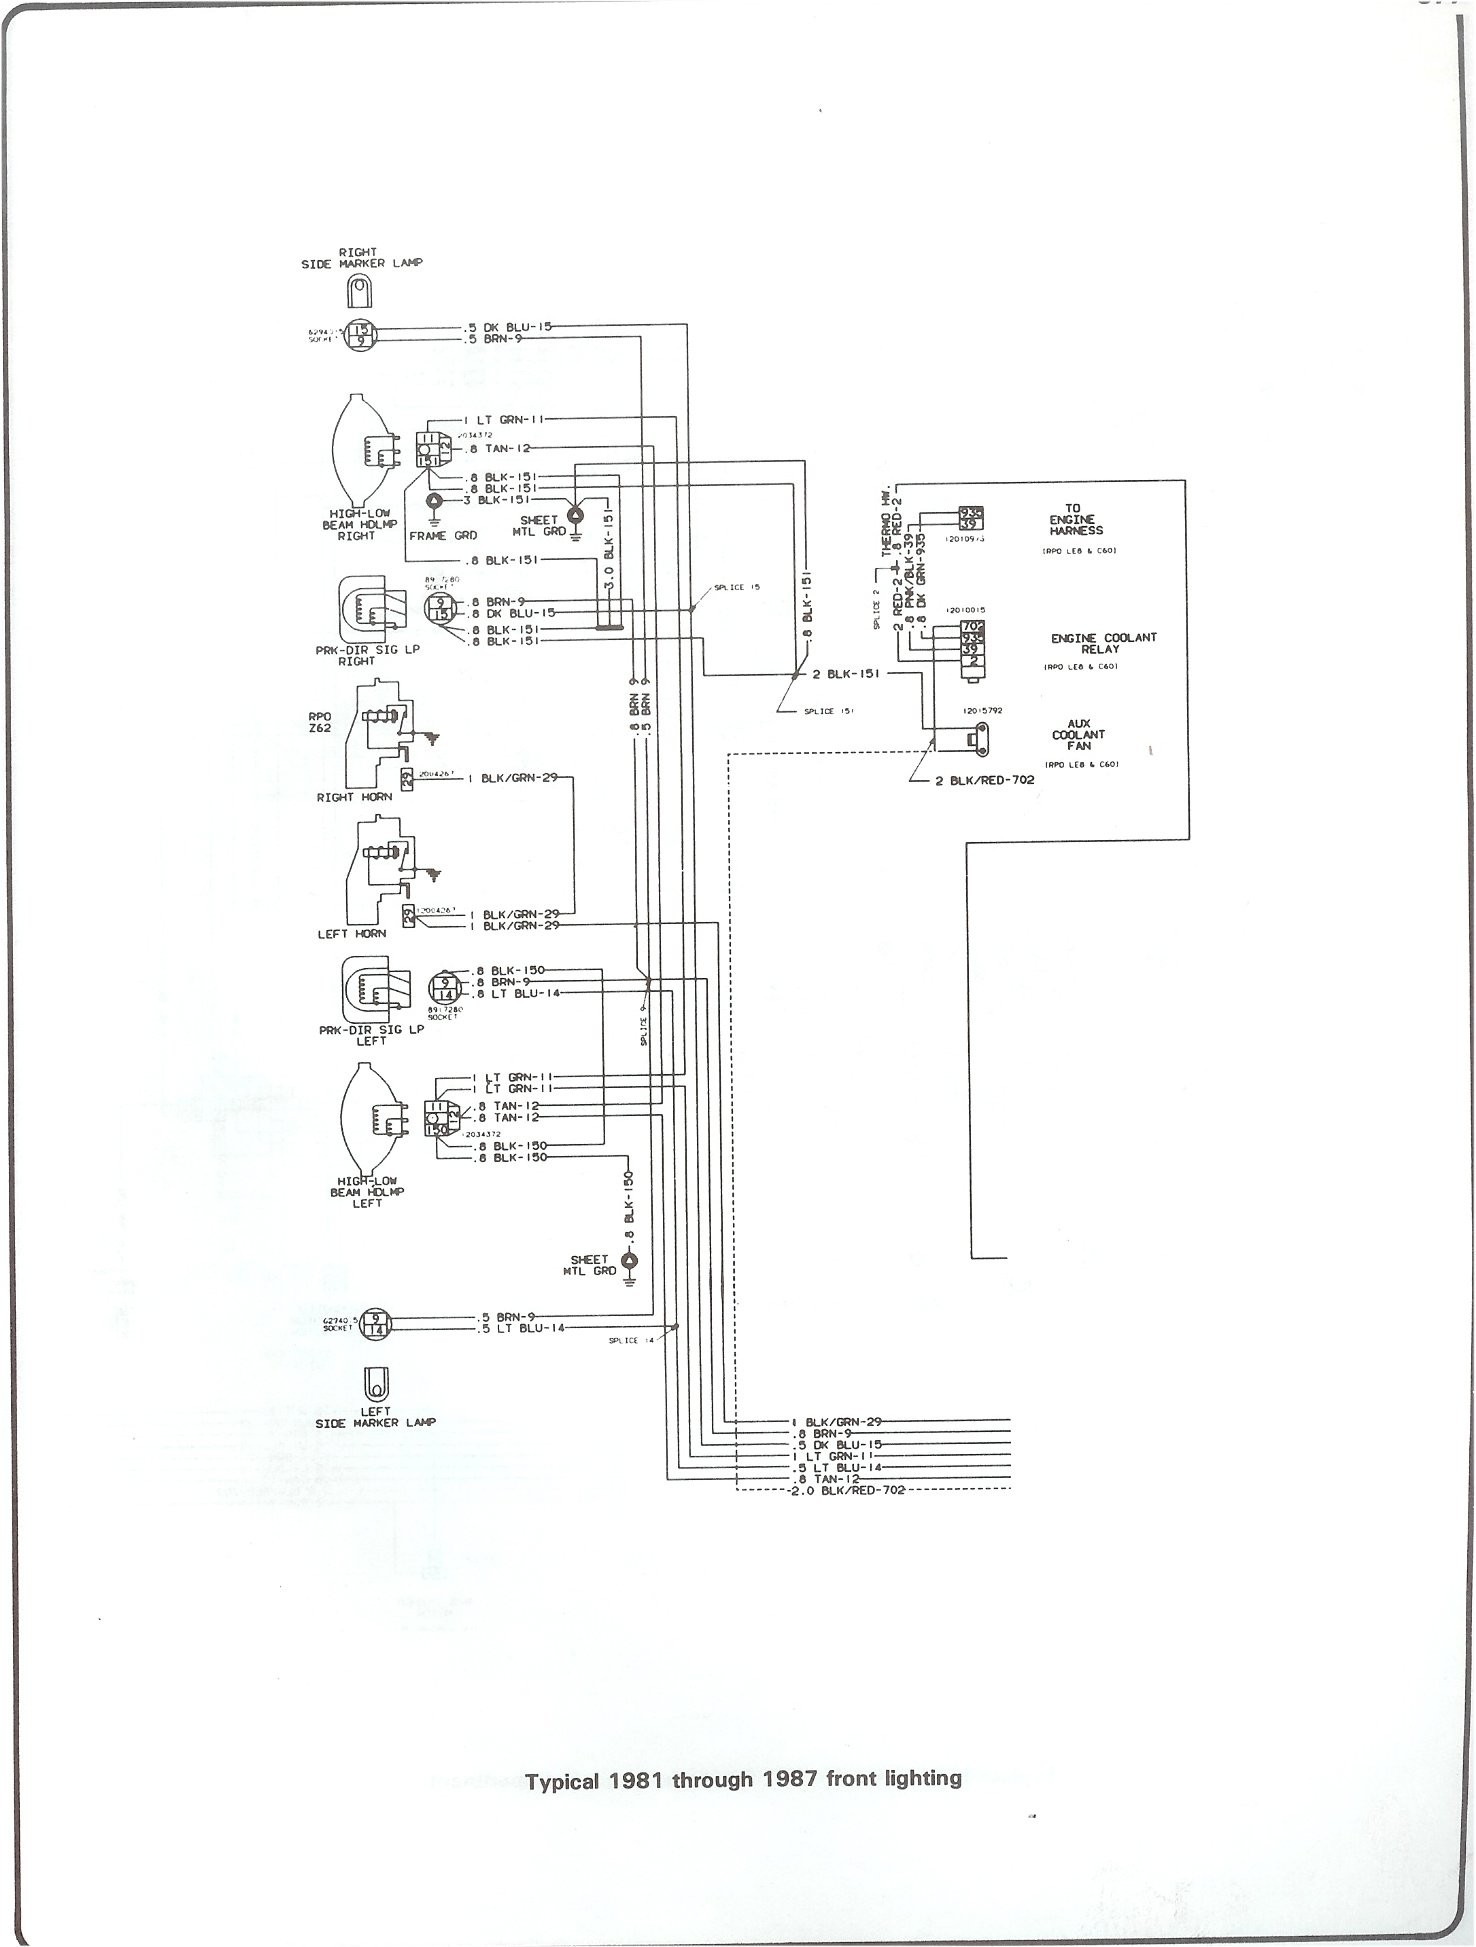 Chevy S10 Tail Light Wiring Diagram Wiring Diagram 81 Chevy Truck Of Chevy S10 Tail Light Wiring Diagram 92 S10 Tail Light Wiring Diagram Schema Wiring Diagram